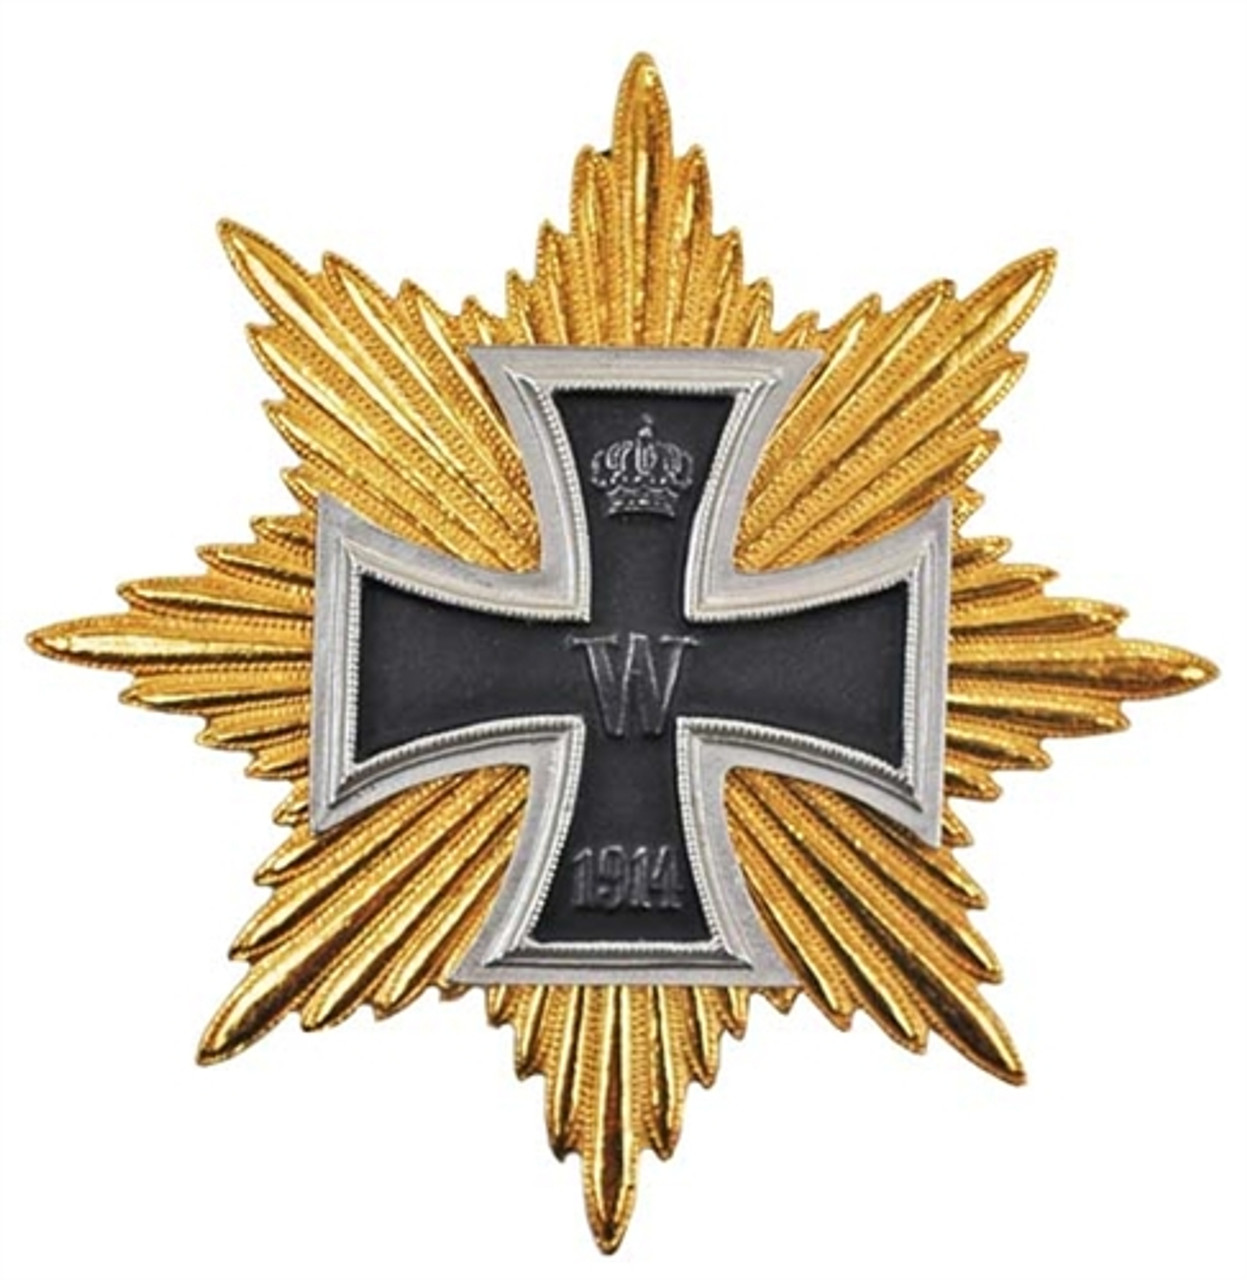 Star of the Grand Cross of the Iron Cross (1914) from Hessen Antique